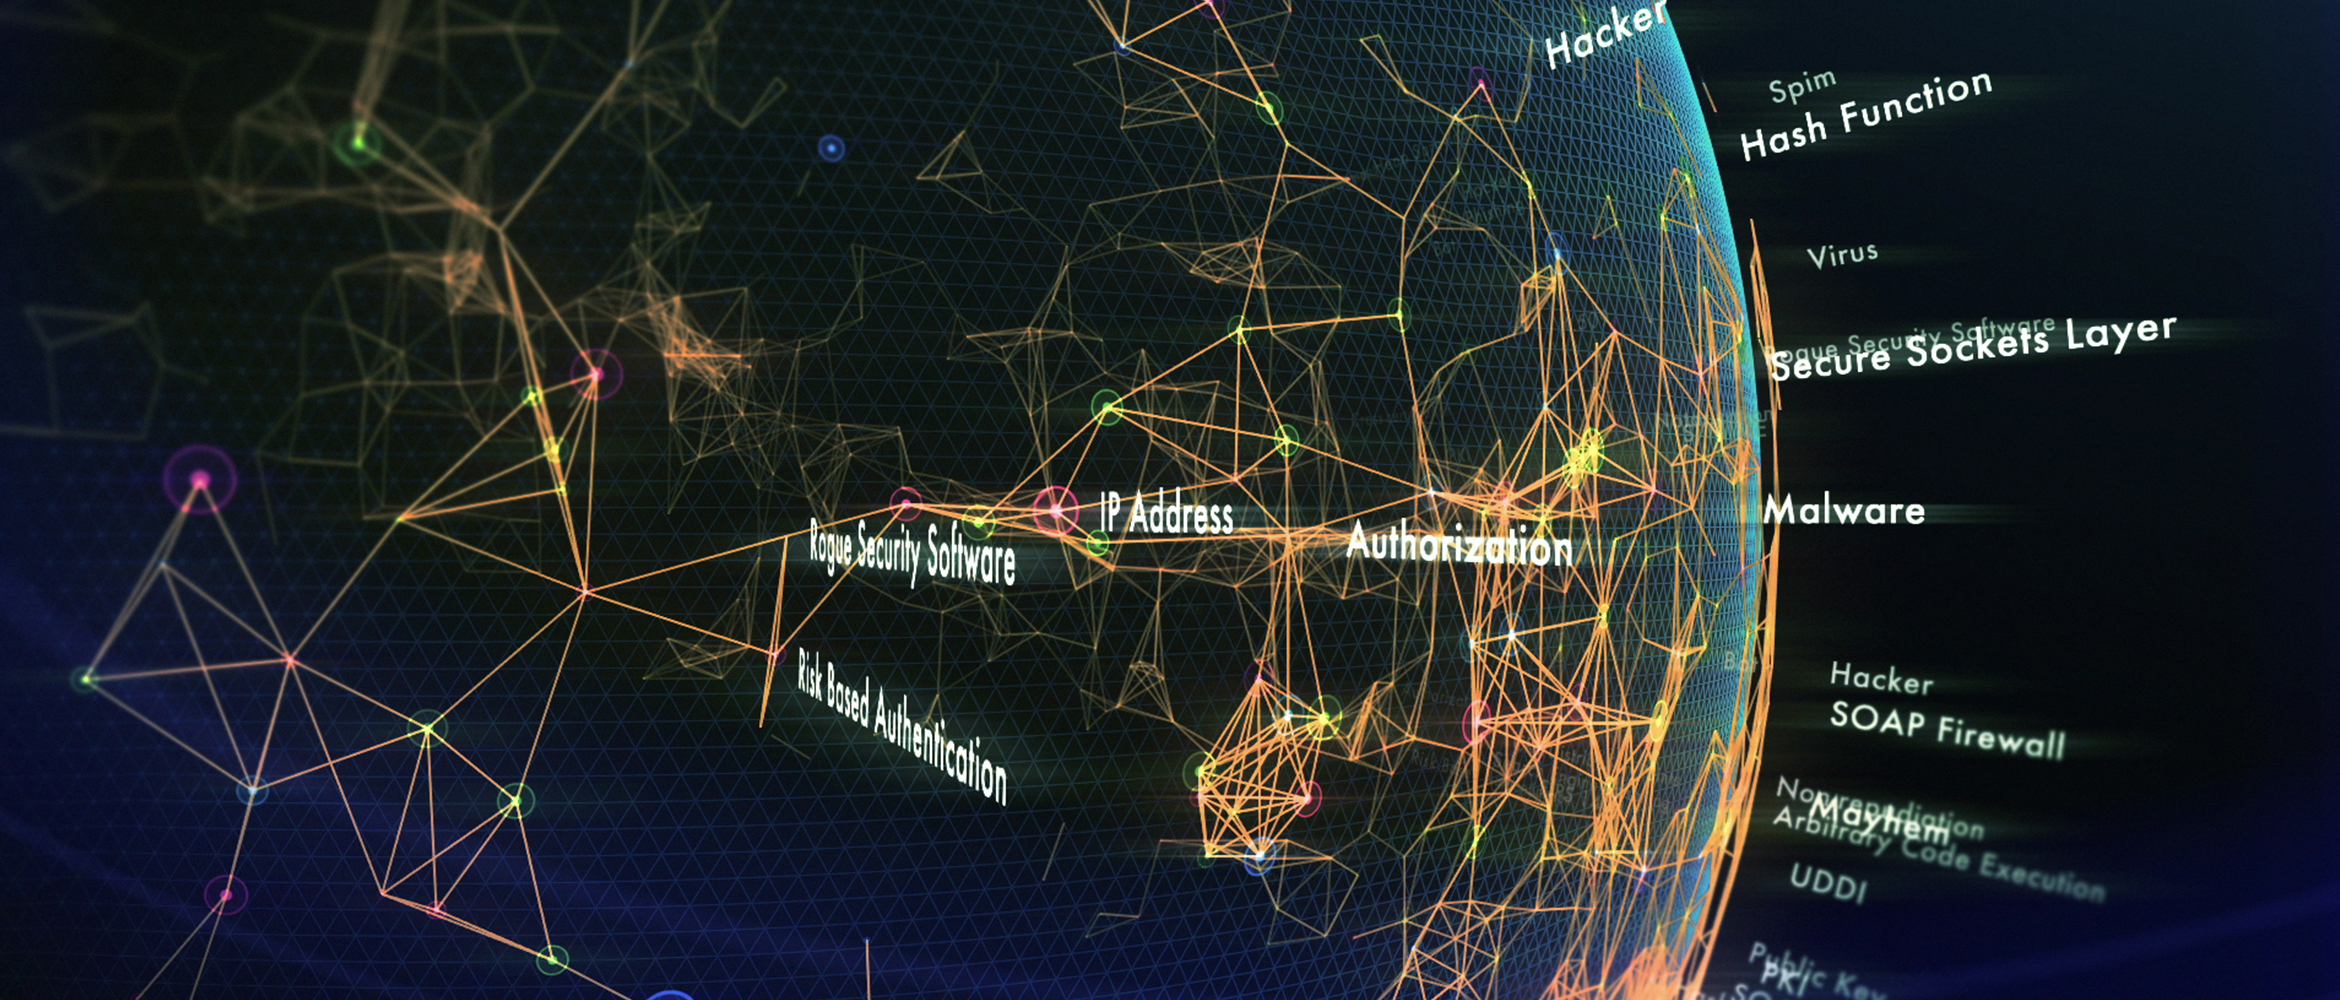 Digital data travelling around a globe